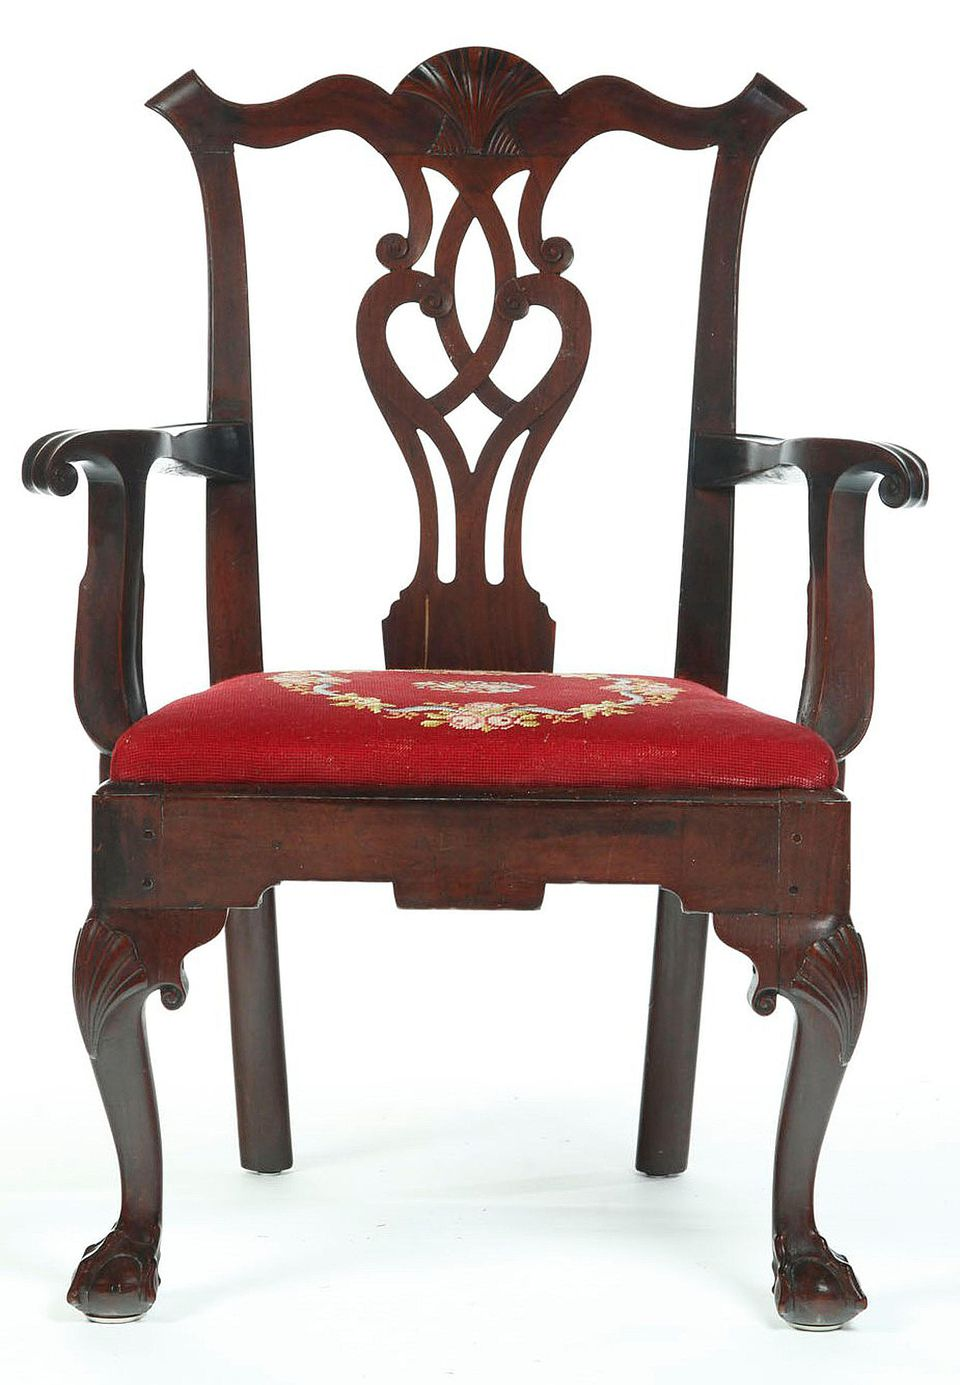 Learn to Identify a Popular Period Style - Identifying Chippendale Style Antique Furniture